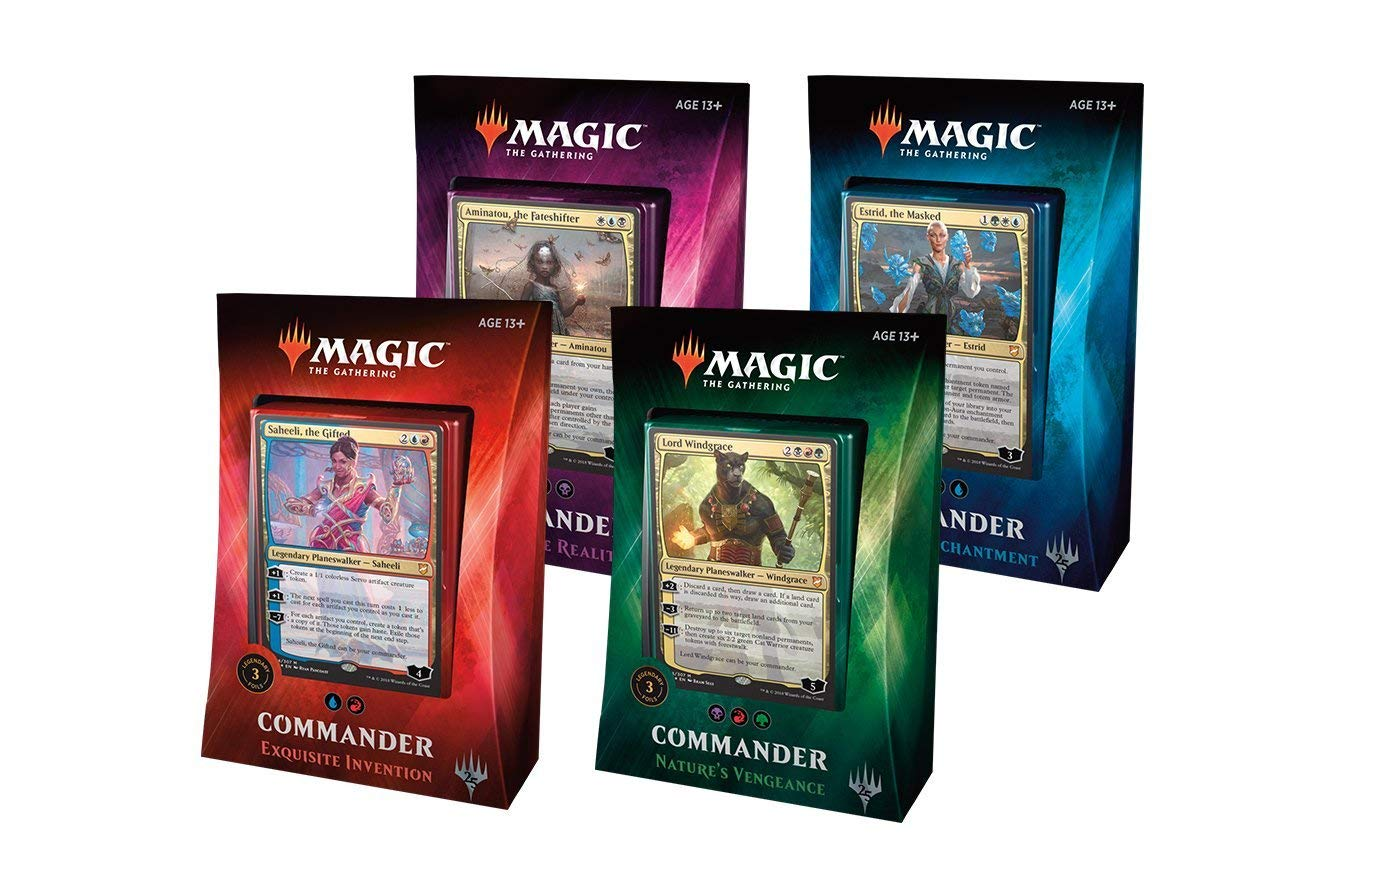 MTG Magic The Gathering 2018 Commander Set All 4 Decks by Wizards of the Coast